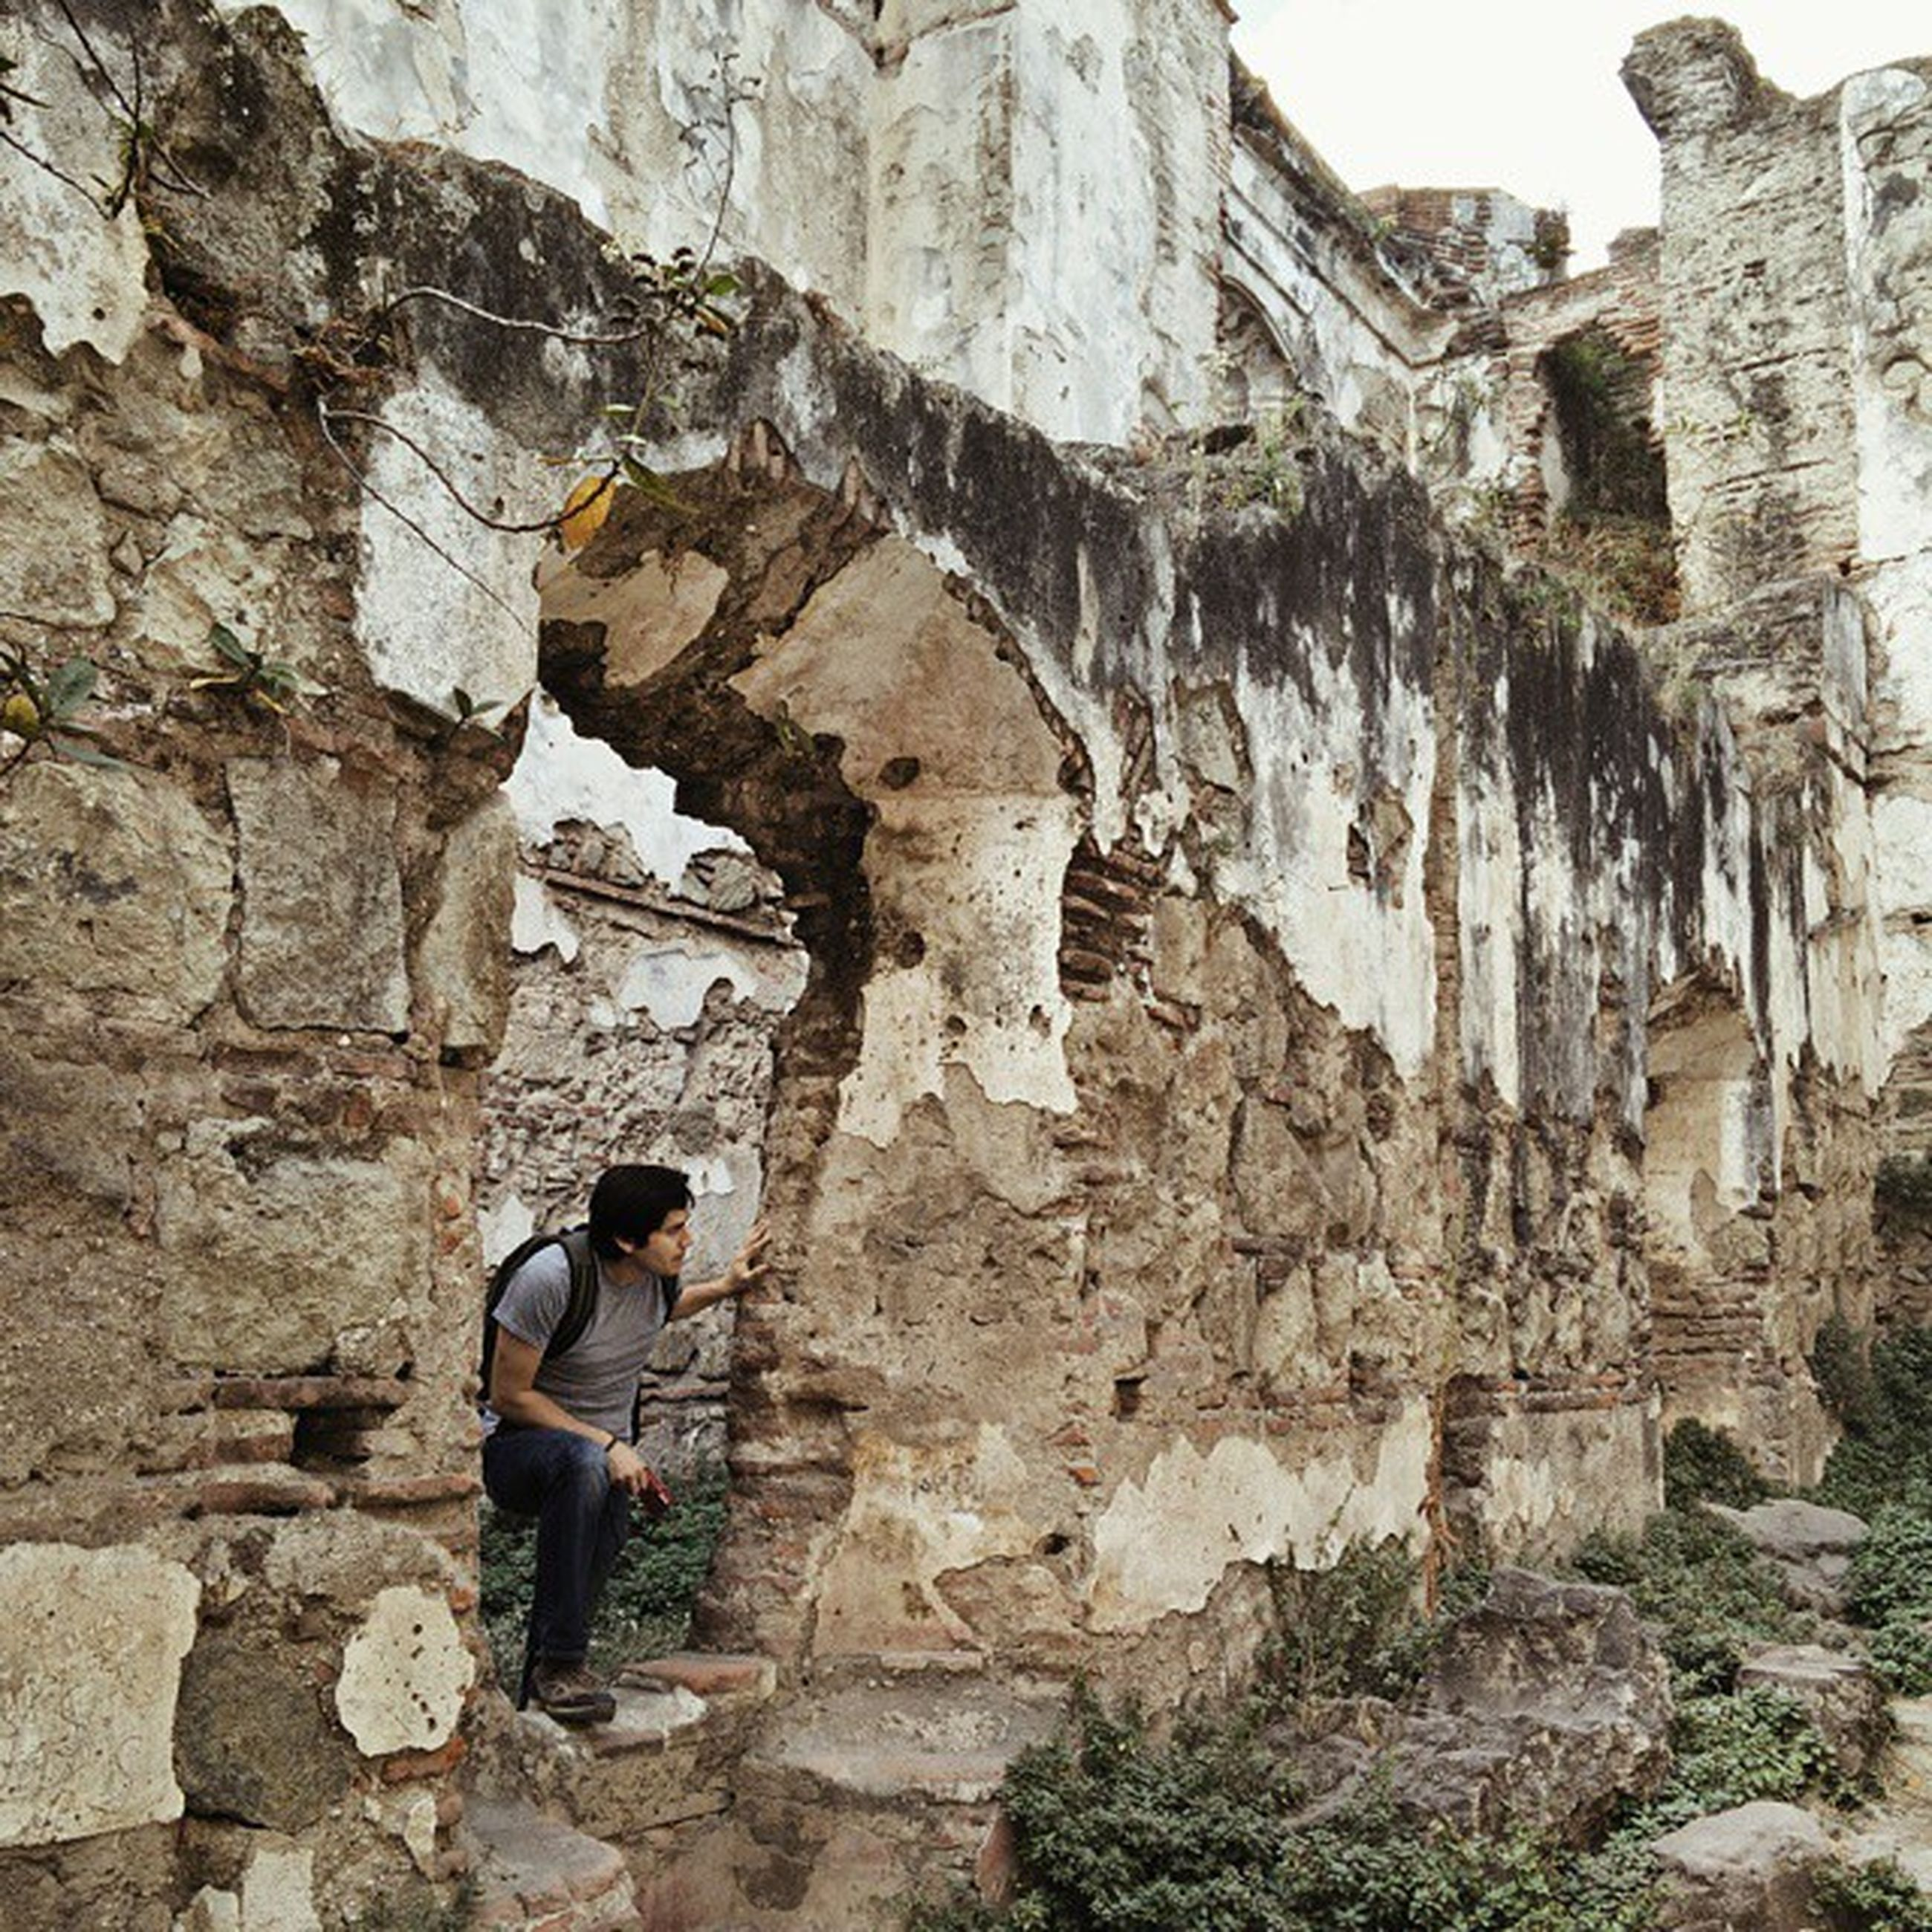 lifestyles, architecture, leisure activity, built structure, men, old ruin, stone wall, building exterior, history, person, full length, rock - object, old, ancient, tourist, travel, rock formation, the past